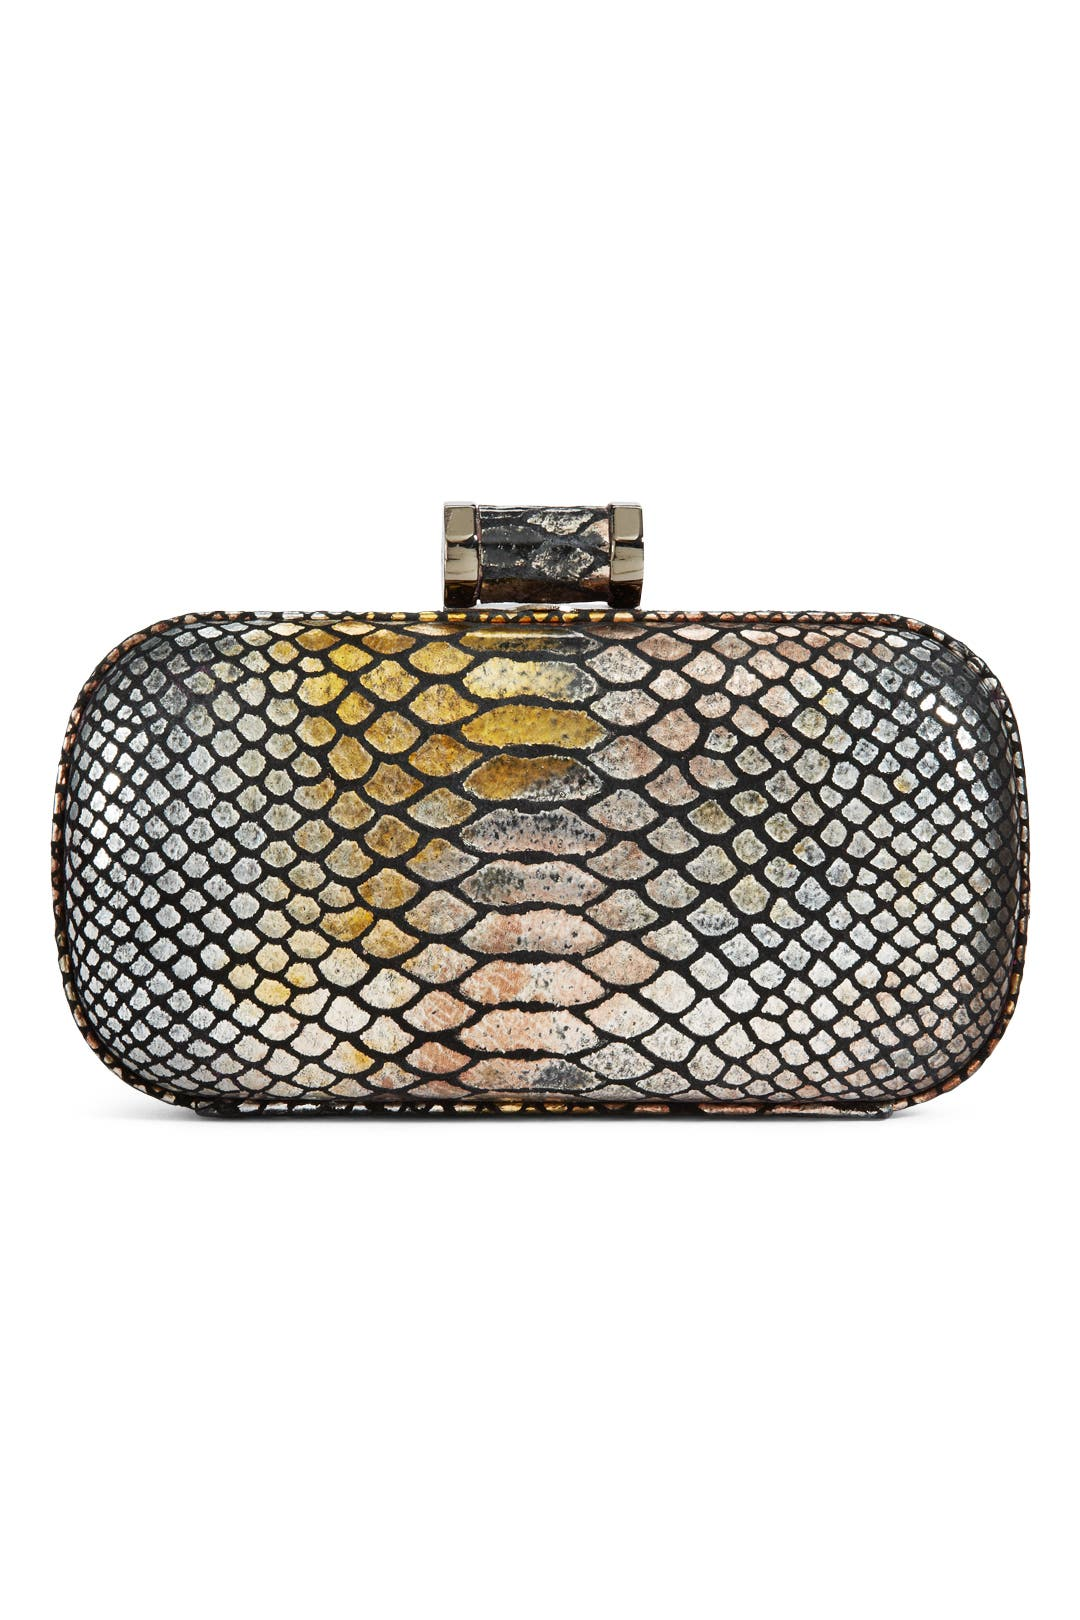 Bronze Snake Clutch by Halston Heritage Handbags